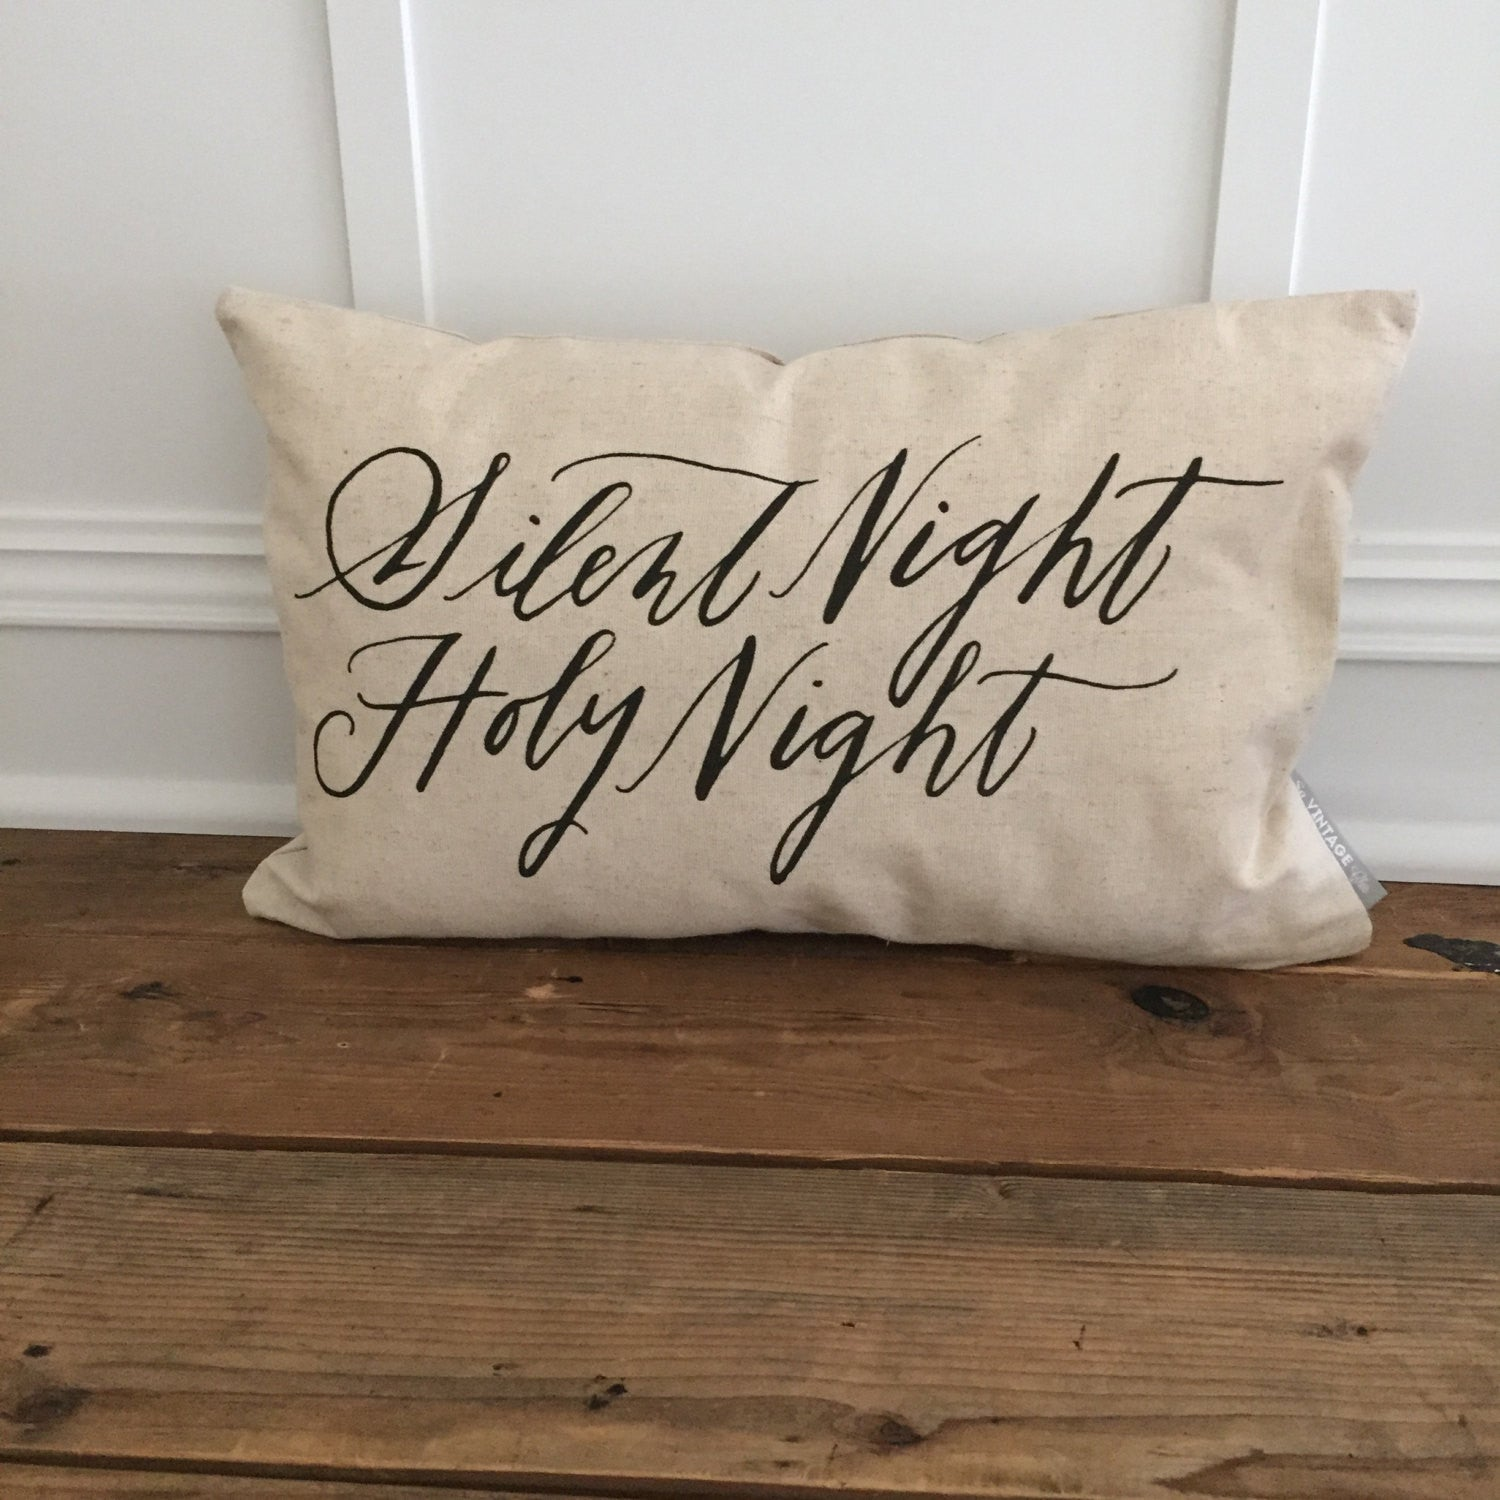 Silent Night Holy Night Pillow Cover - Linen and Ivory